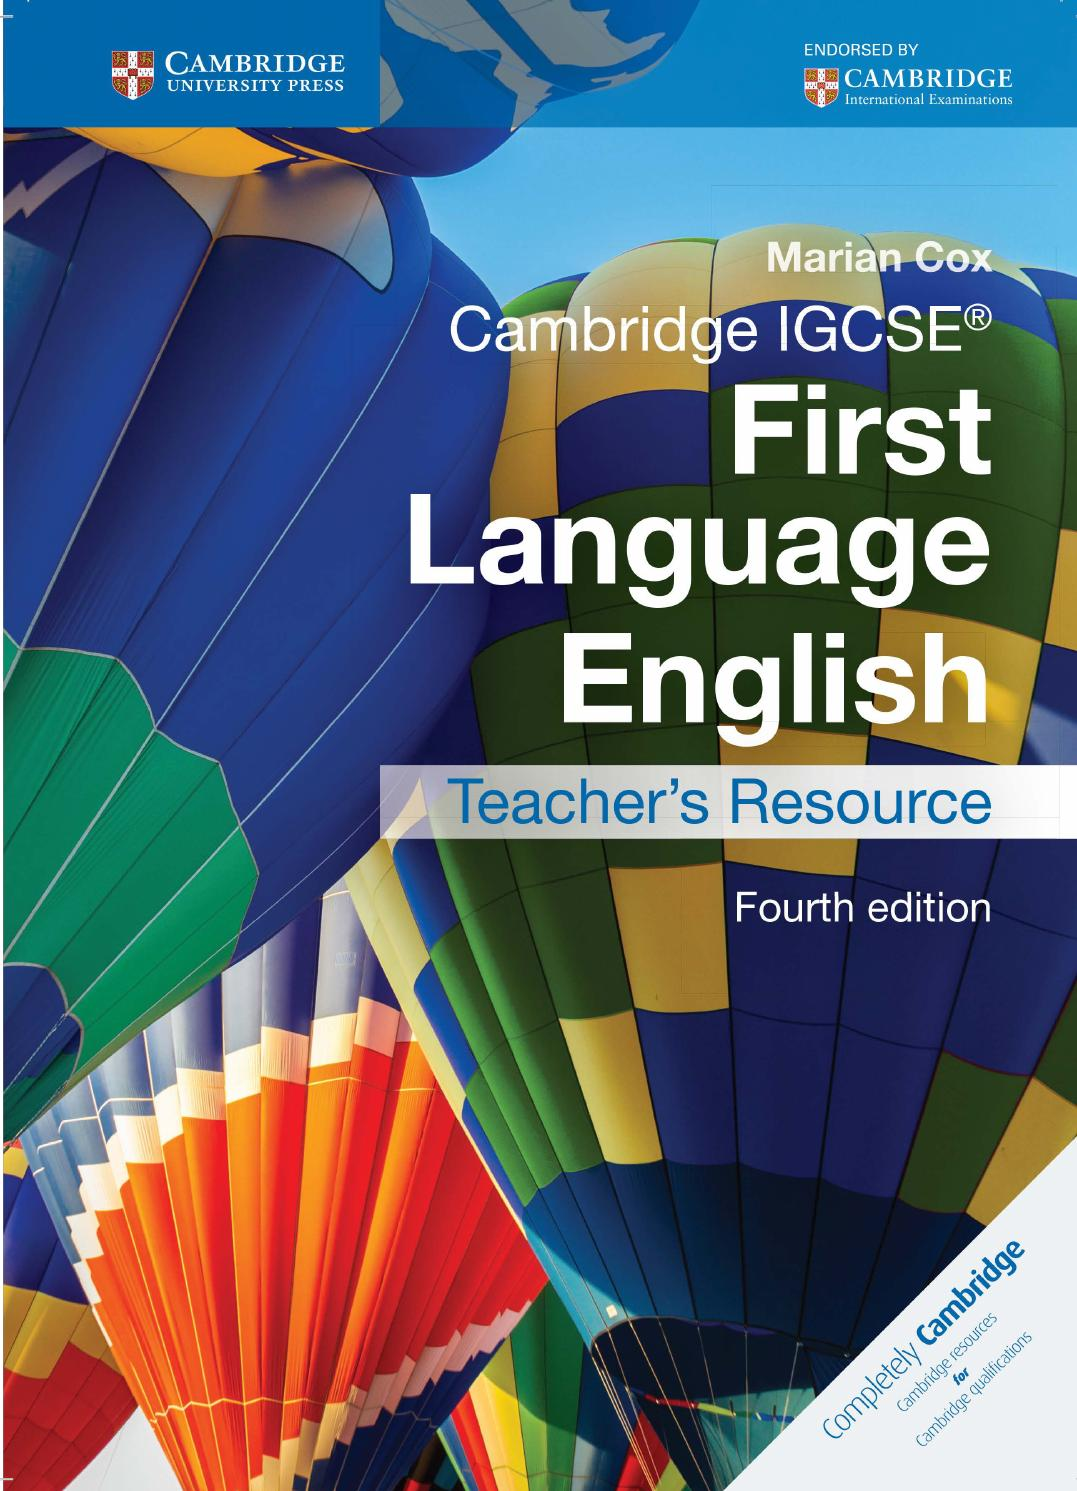 igcse english coursework resources